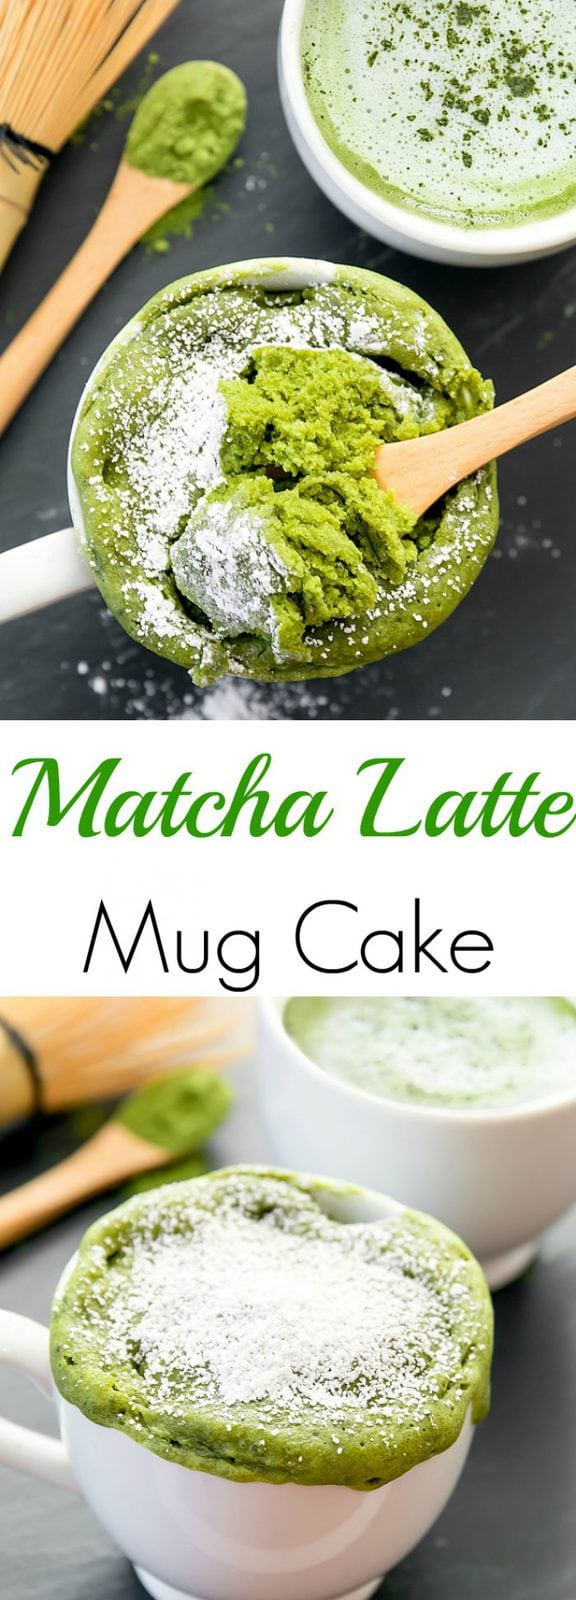 Single Serving Matcha Latte Mug Cake